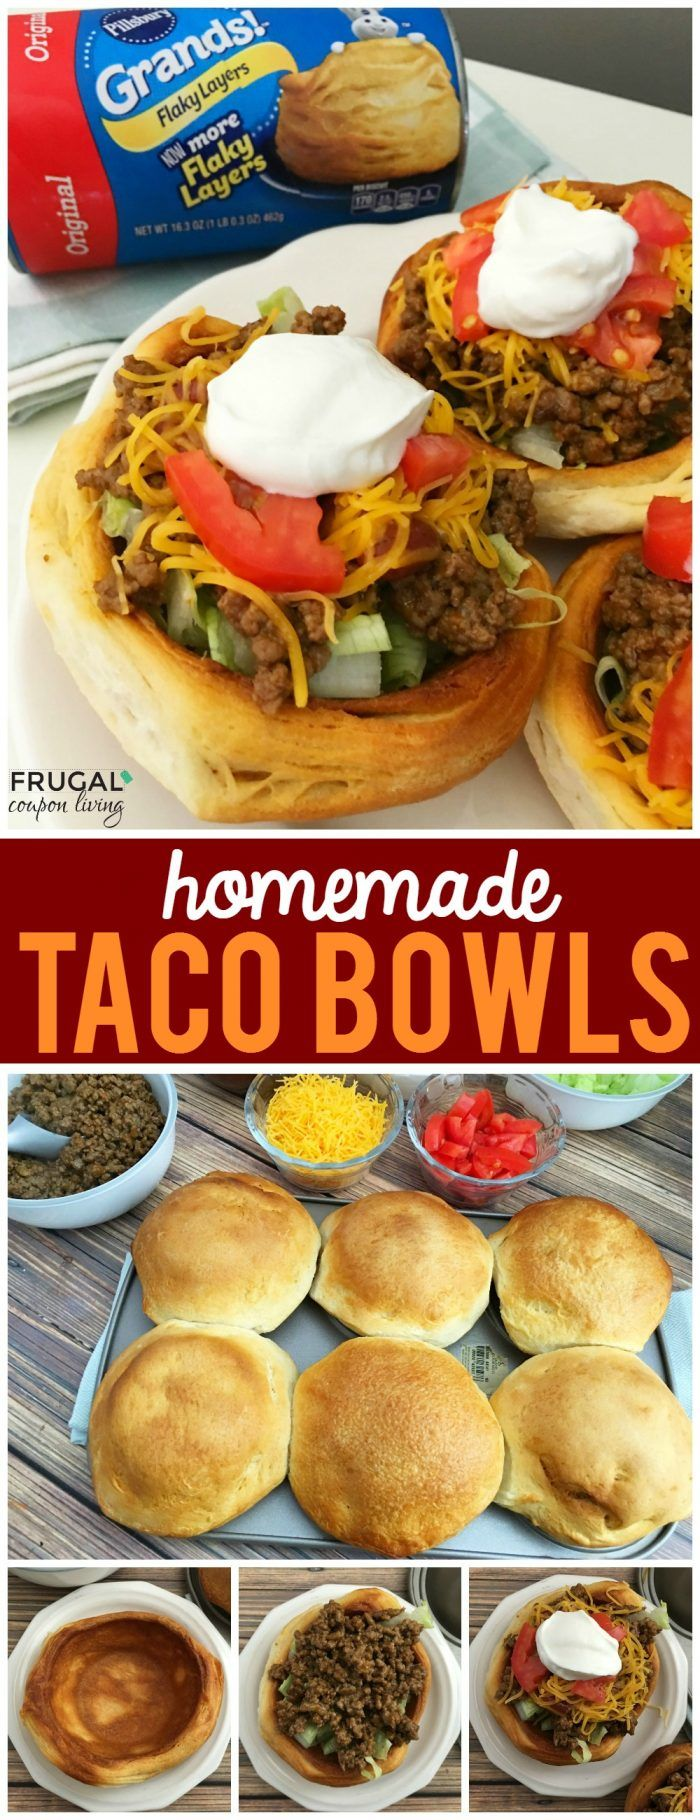 Pillsbury Grands Homemade Taco Bowls on Frugal Coupon Living. Pillsbury Recipe. Taco Tuesday Recipe Idea.